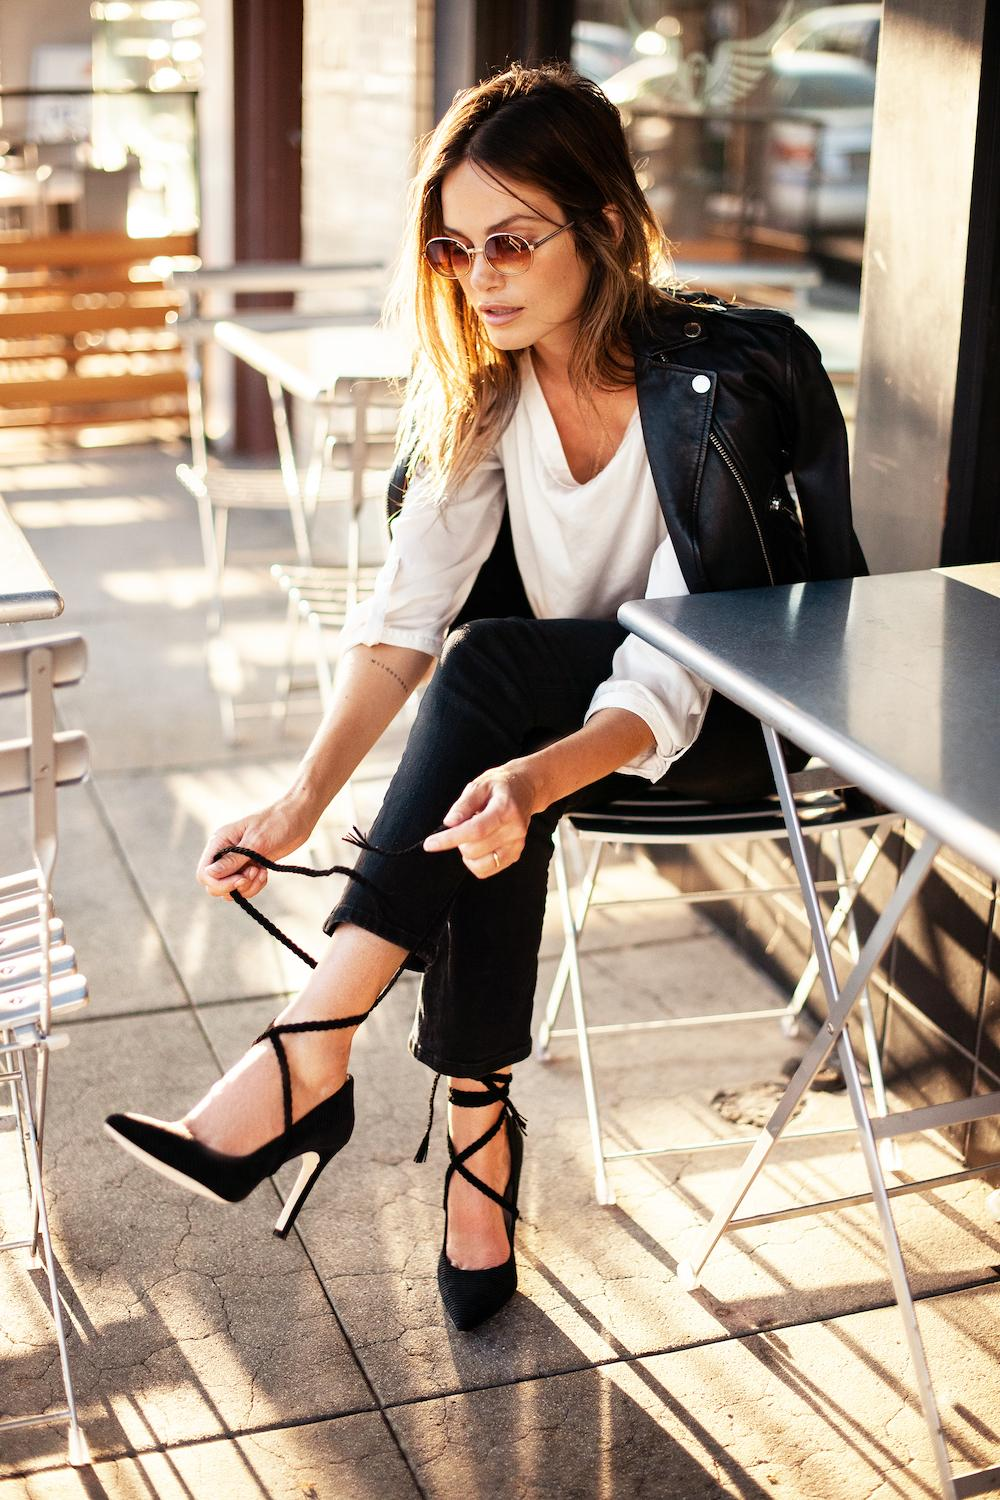 Elegant look in black and white classic colors for spring-summer season